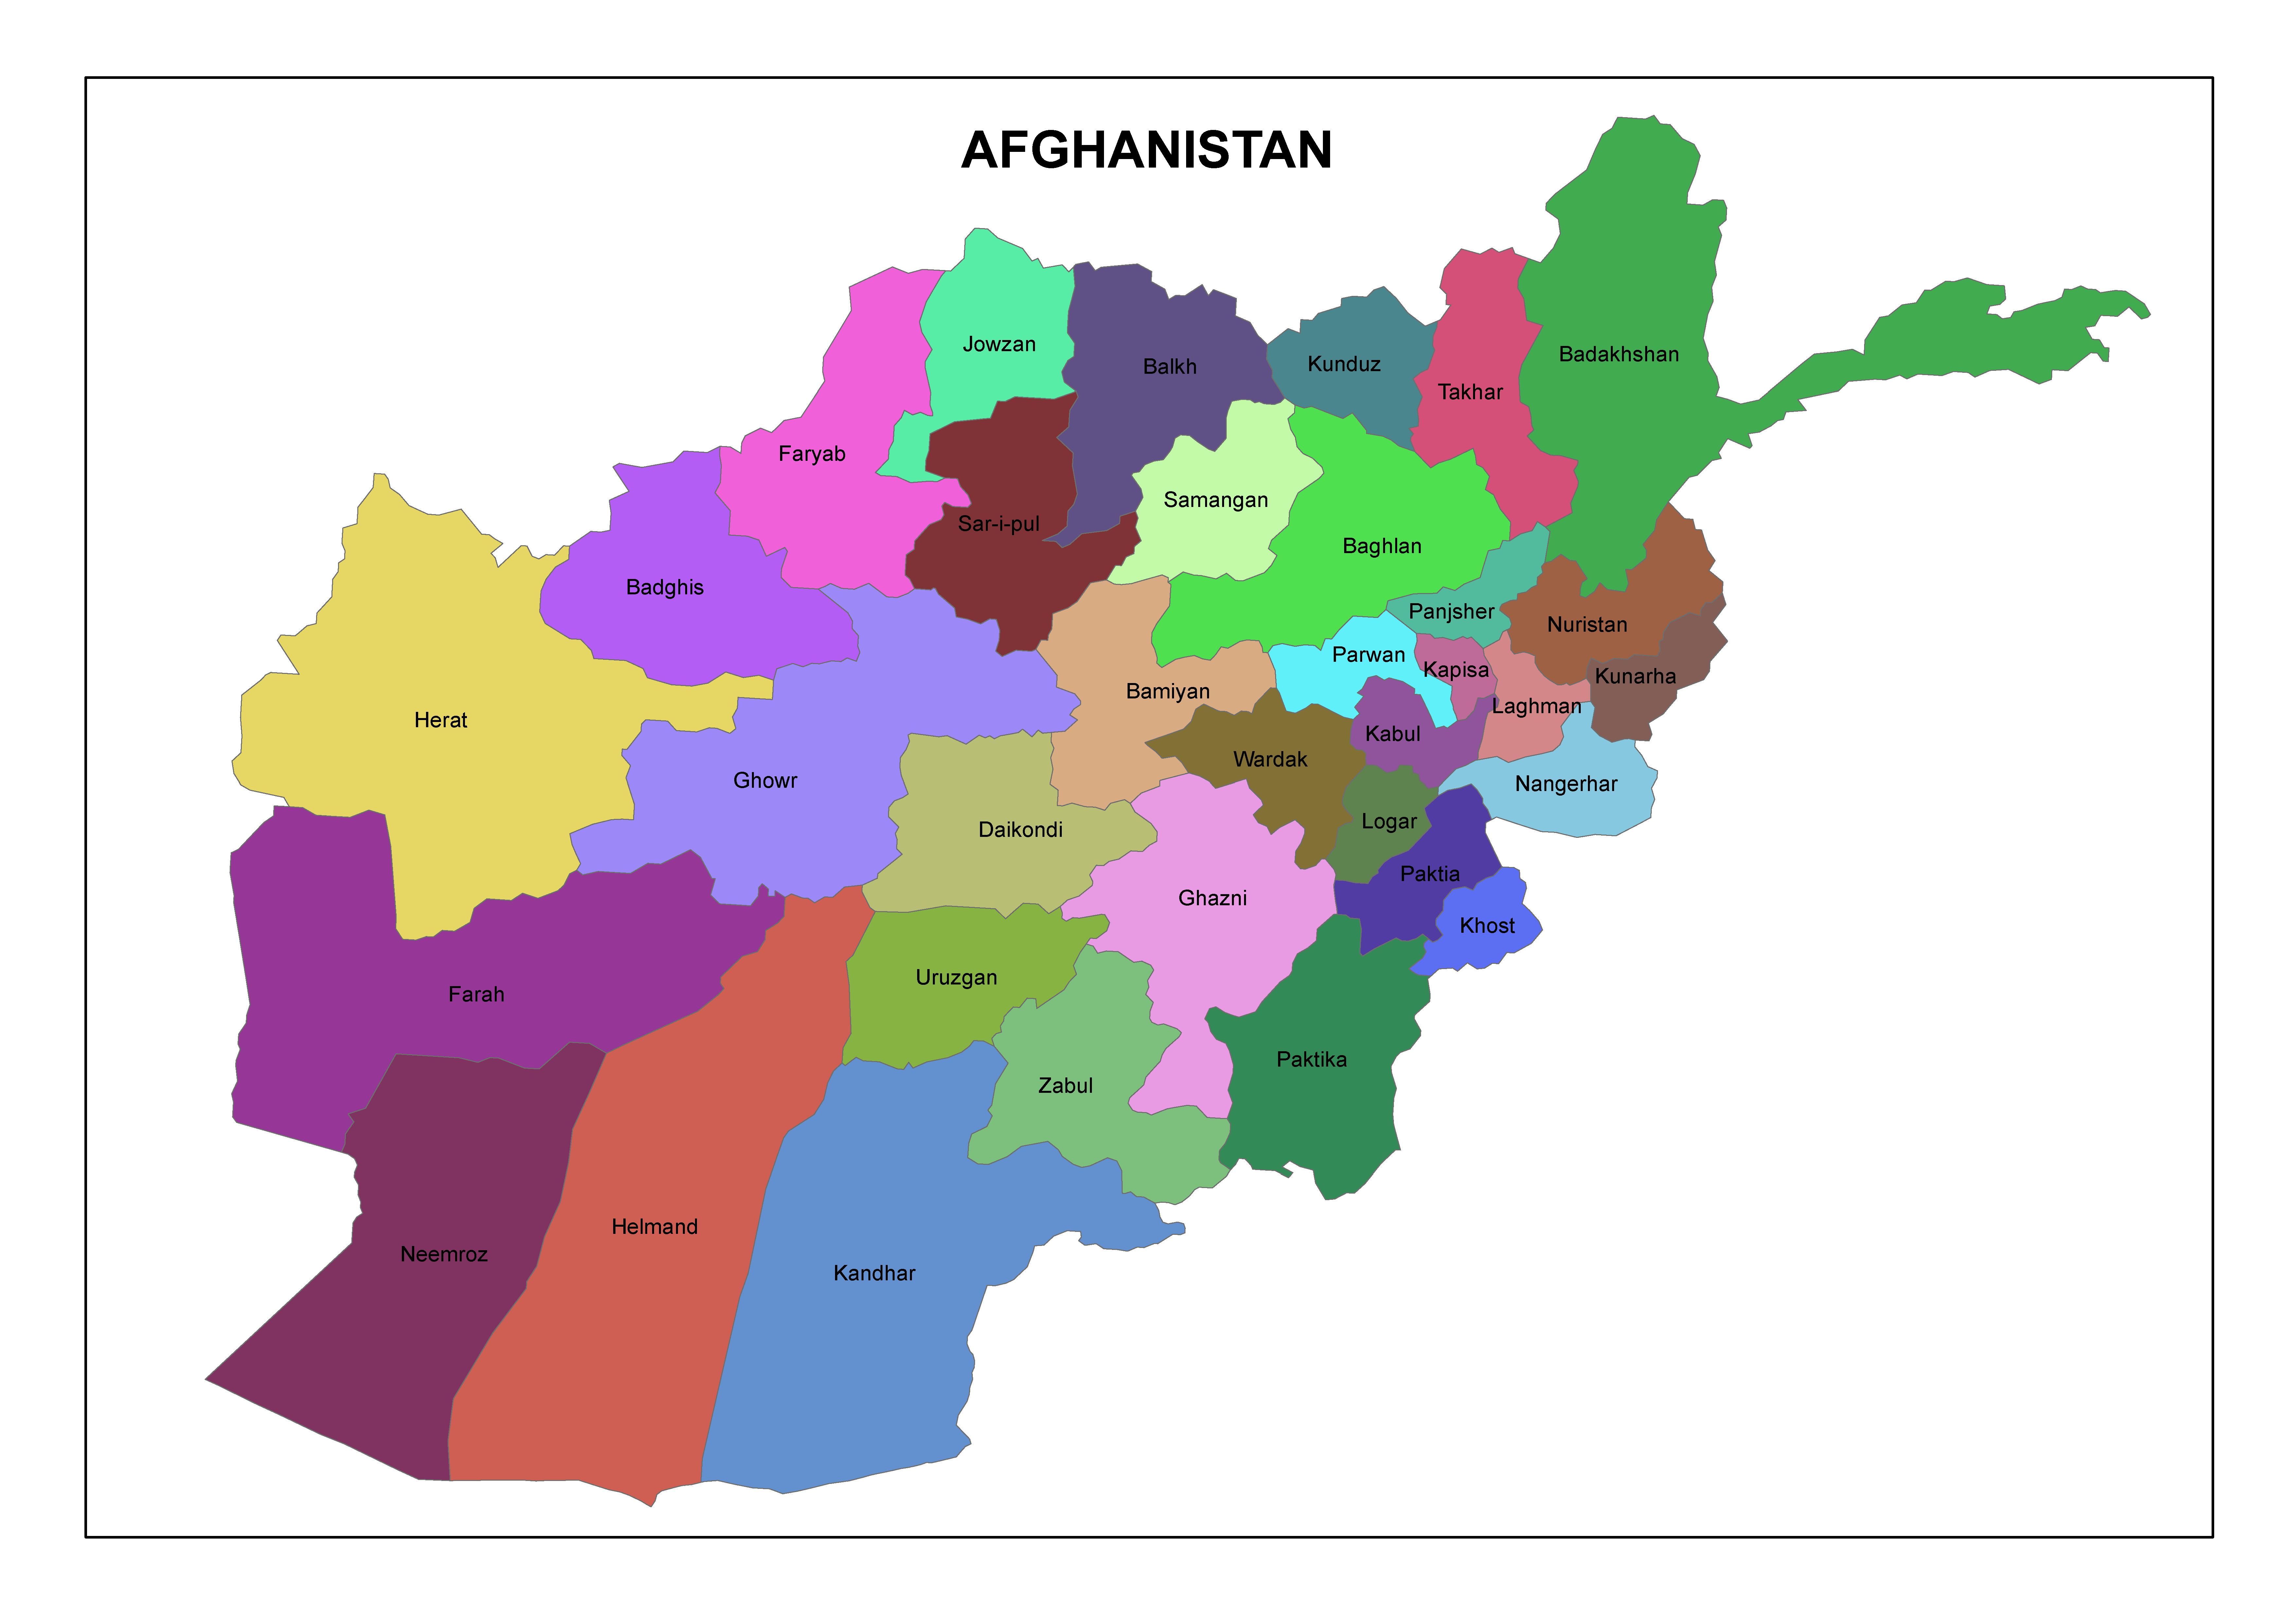 Pashtuns | South Asia Blog